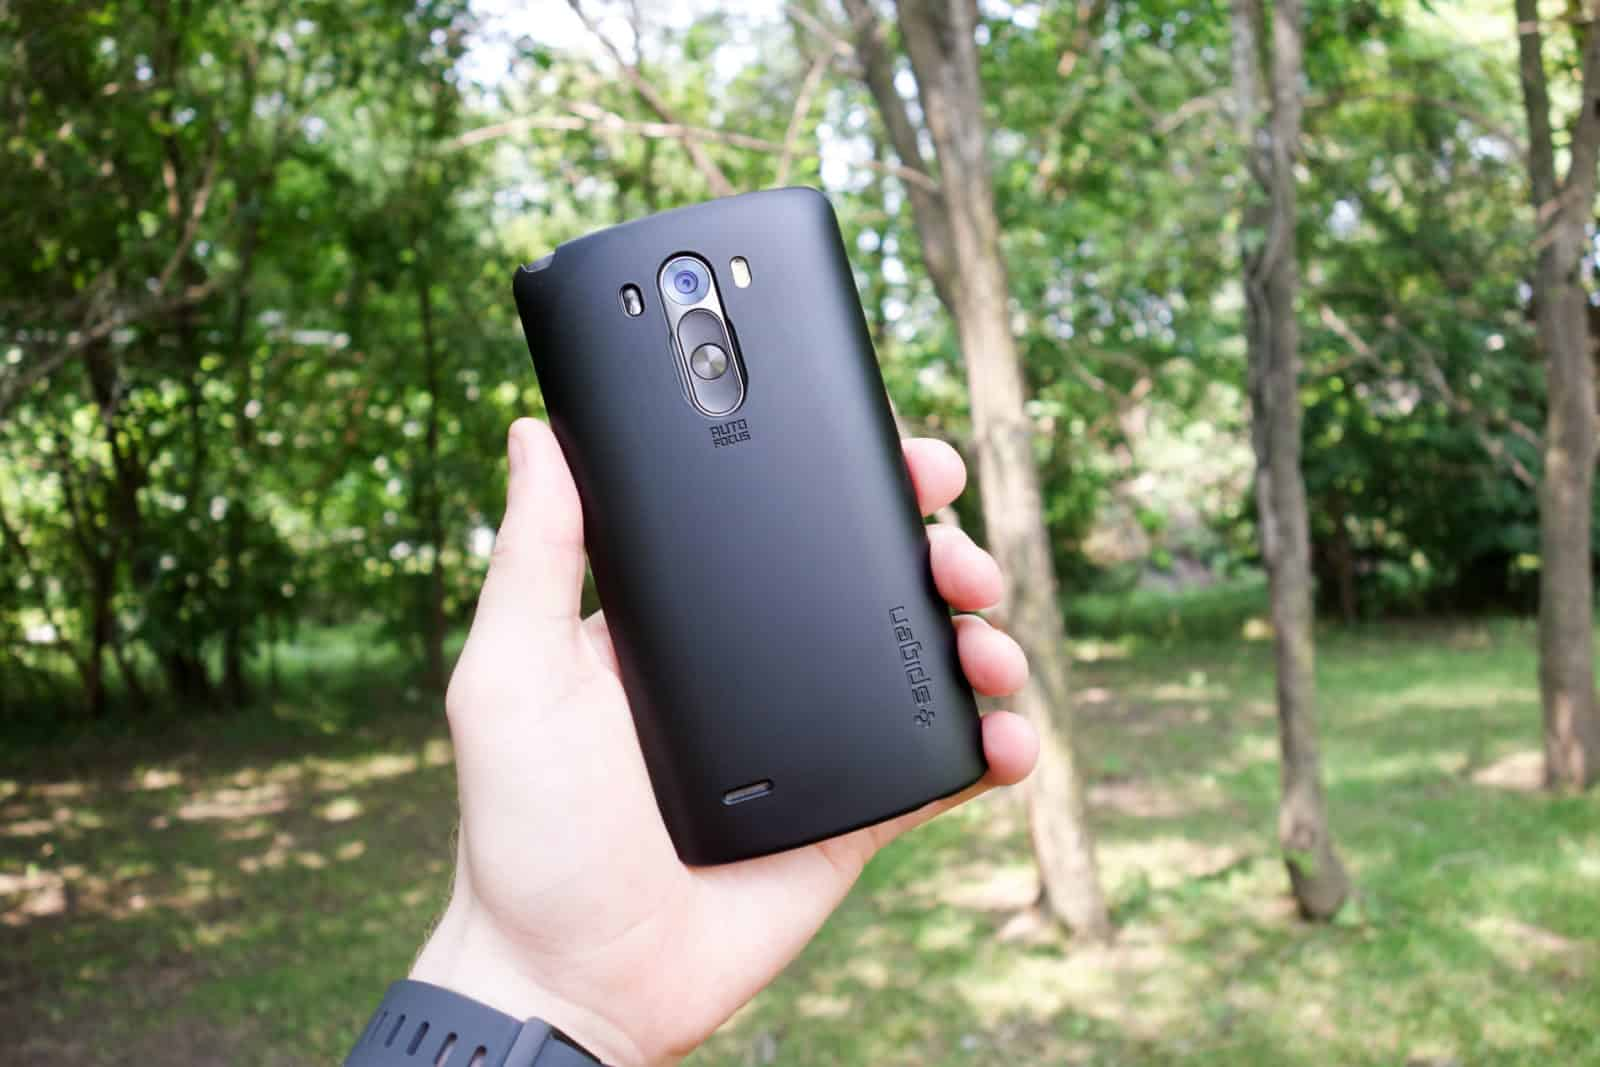 Spigen-Ultra-Fit-LG-G3-Review-AH-1